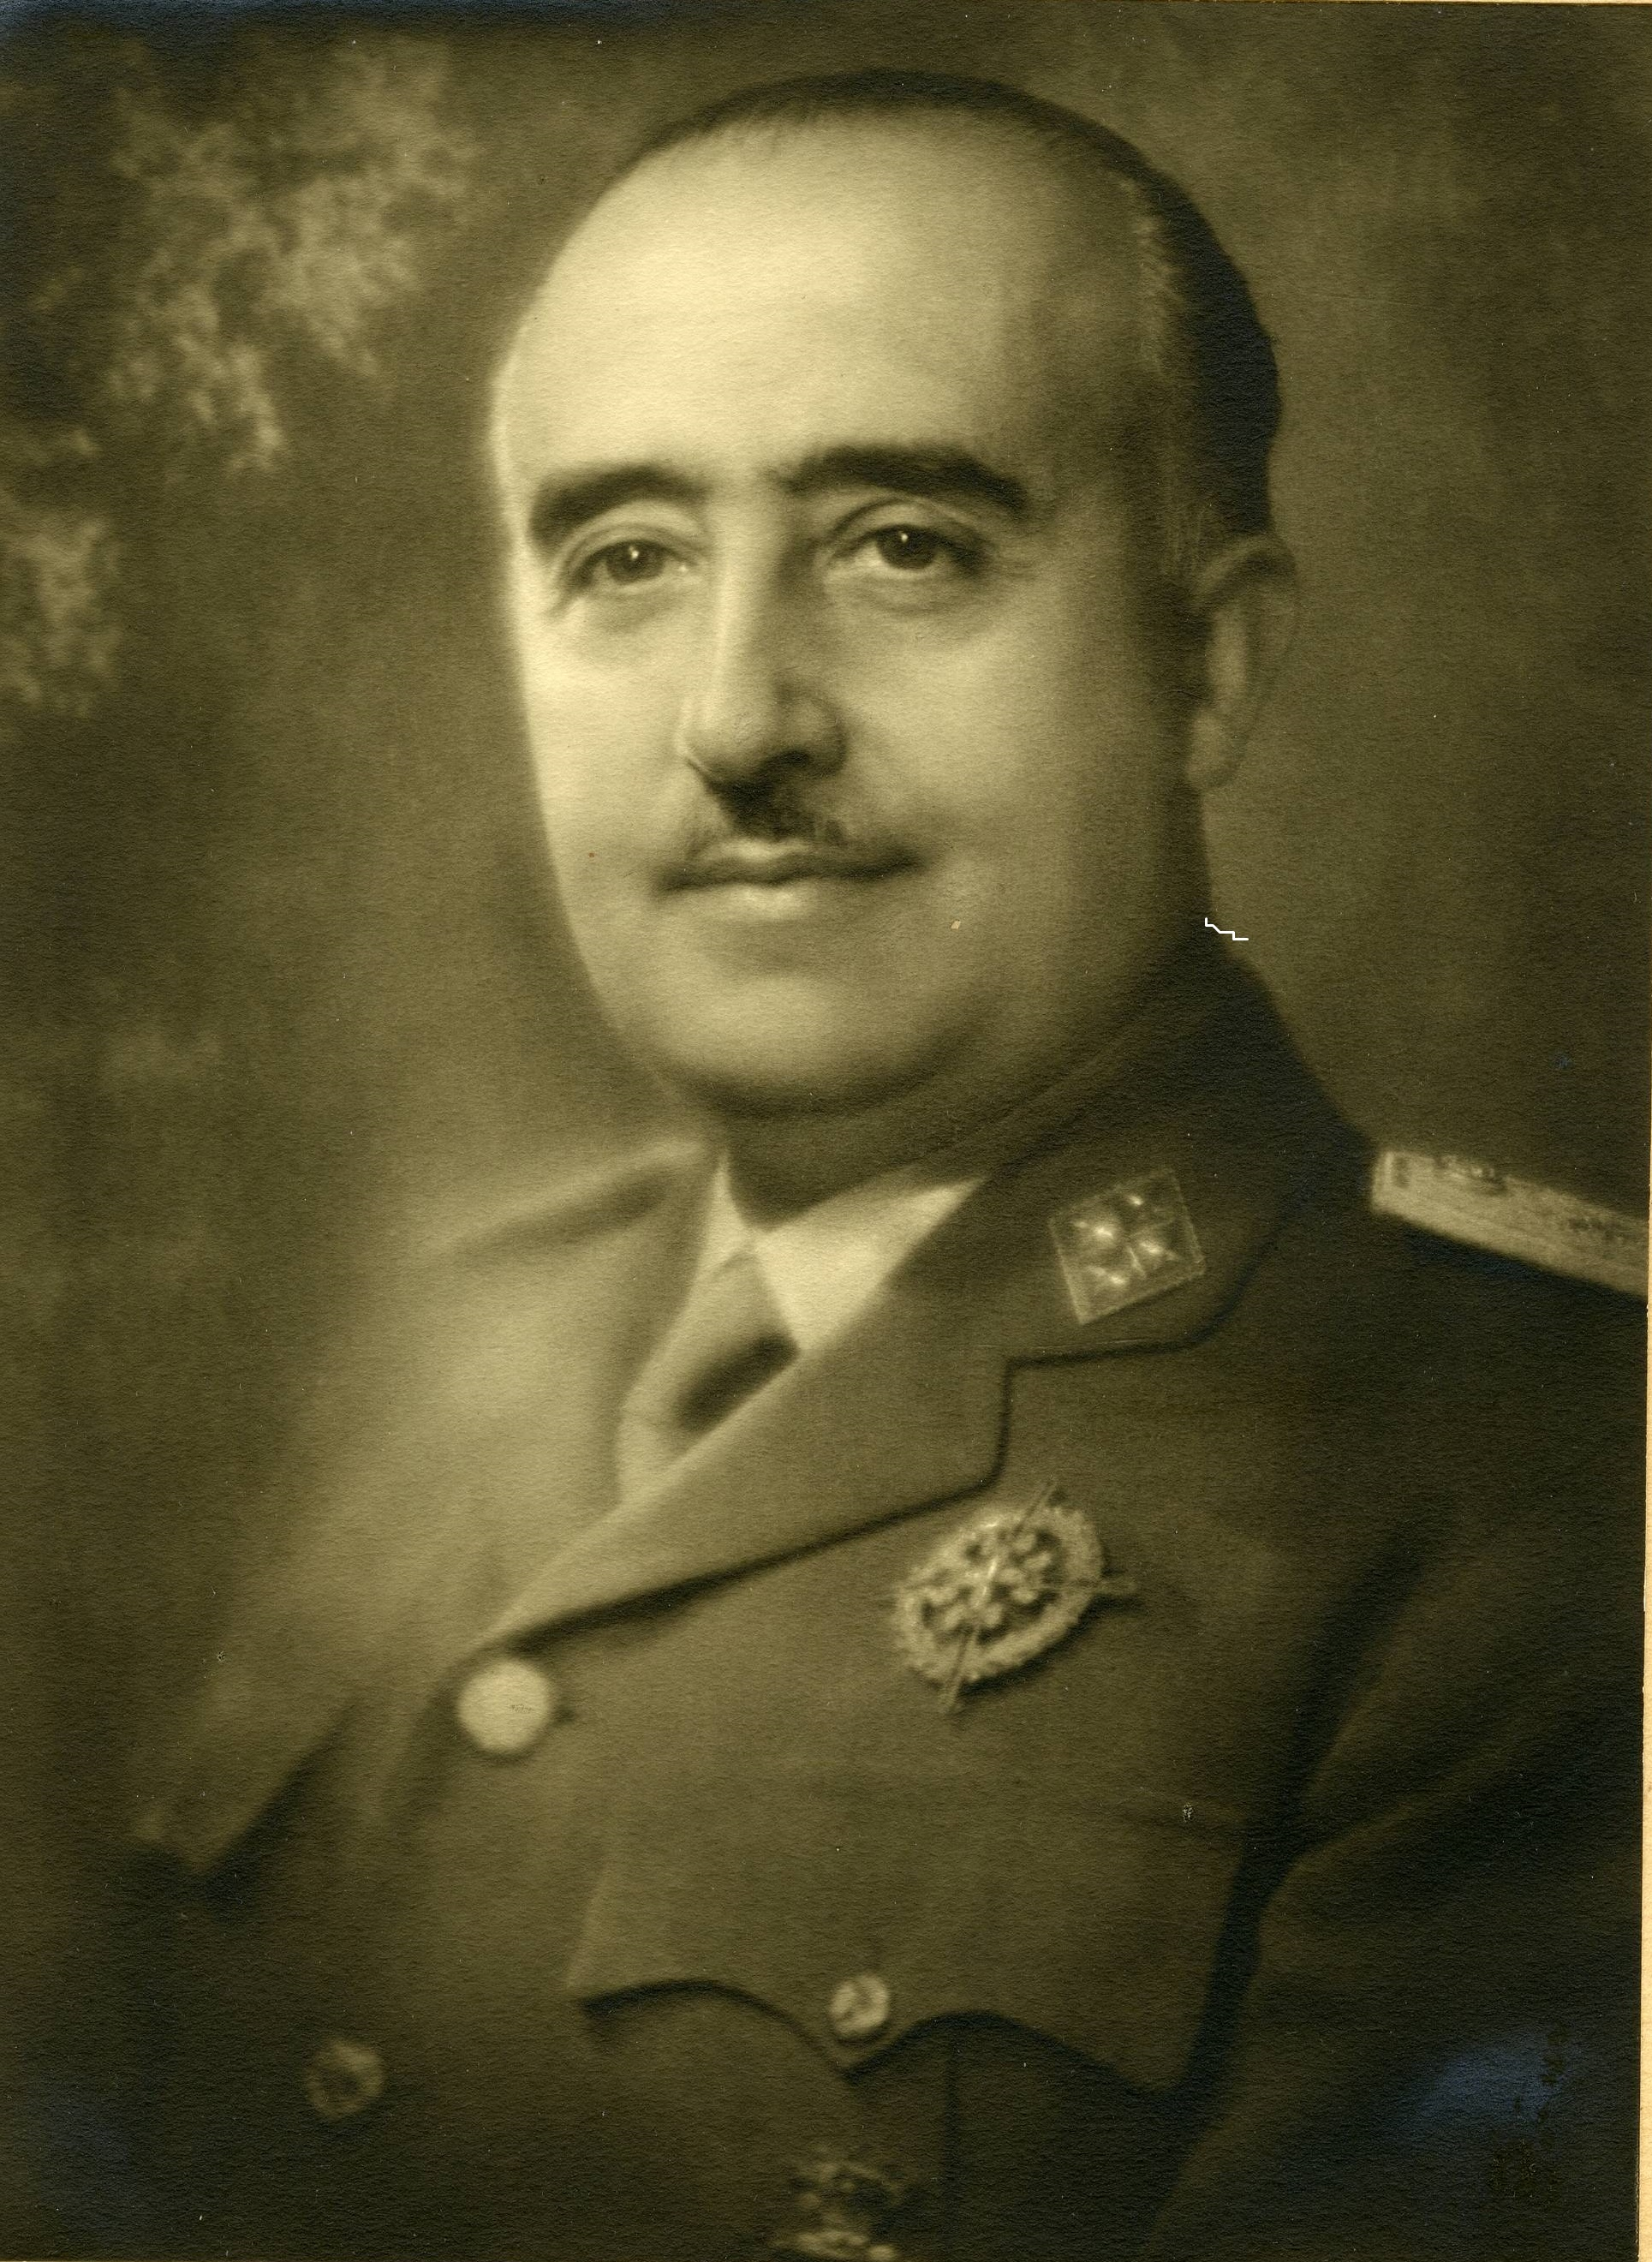 biography of francisco franco Francisco franco's wiki: francisco franco bahamonde (spanish pronunciation: [fɾanˈθisko ˈfɾaŋko βaaˈmonde] 4 december 1892[83] – 20 november 1975) was a.